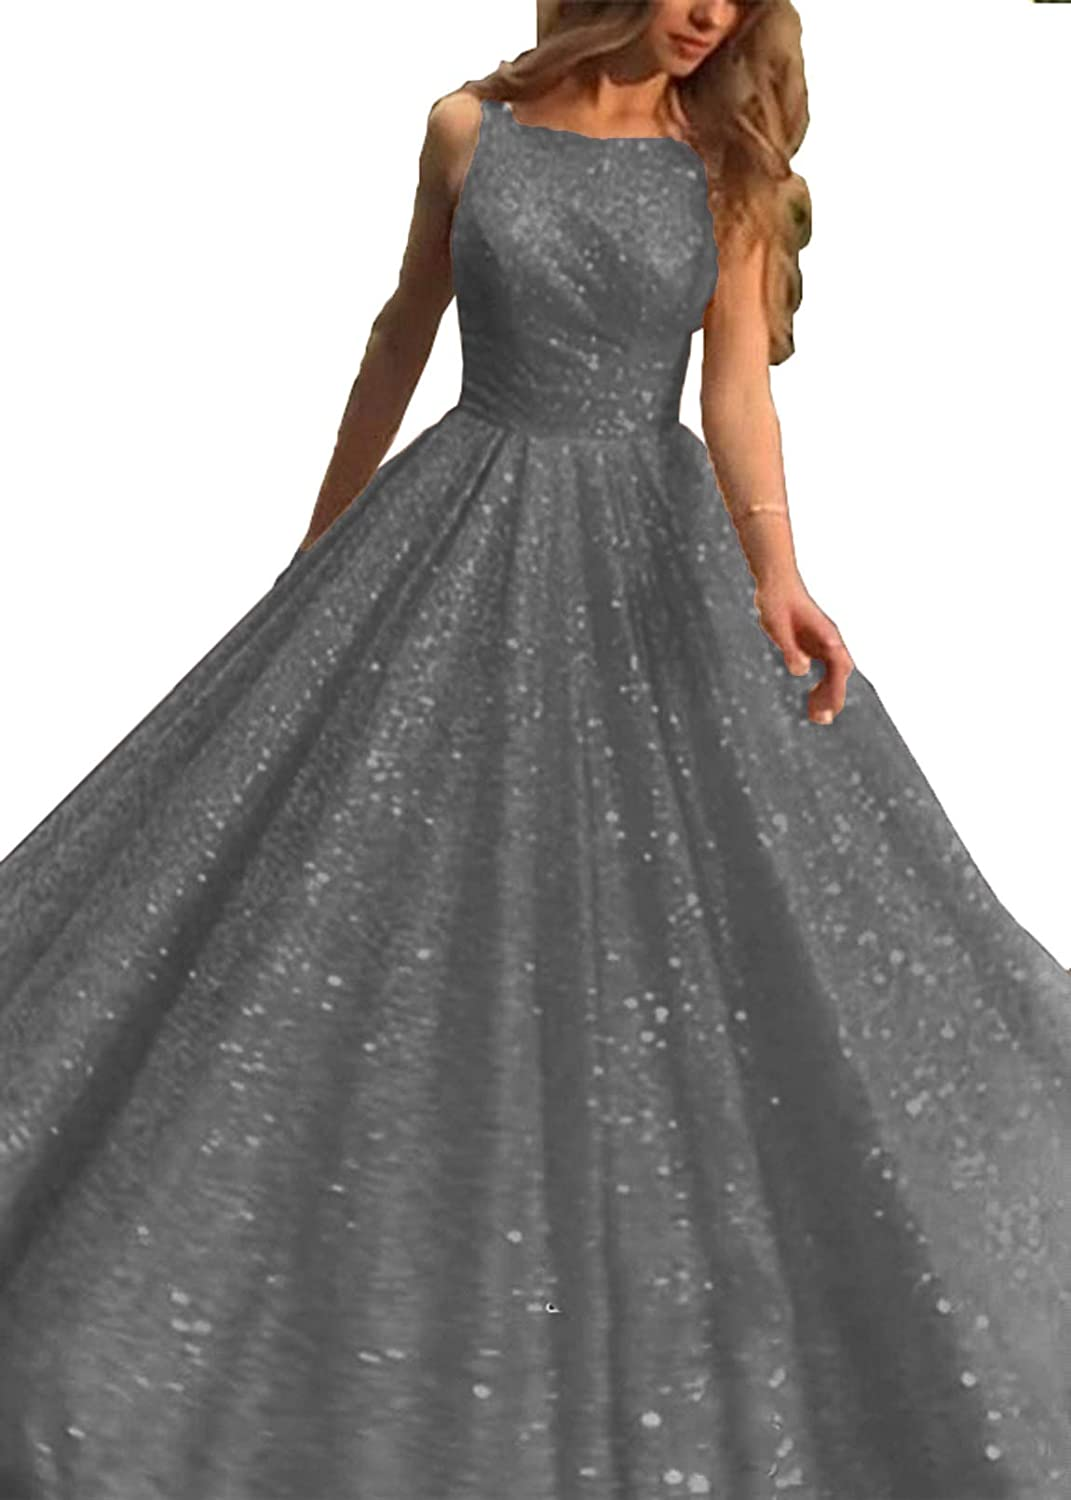 WIYMSHZ Gorgeous Prom Dresses 2019 Long Boat Neck Evening Party Ball Gown